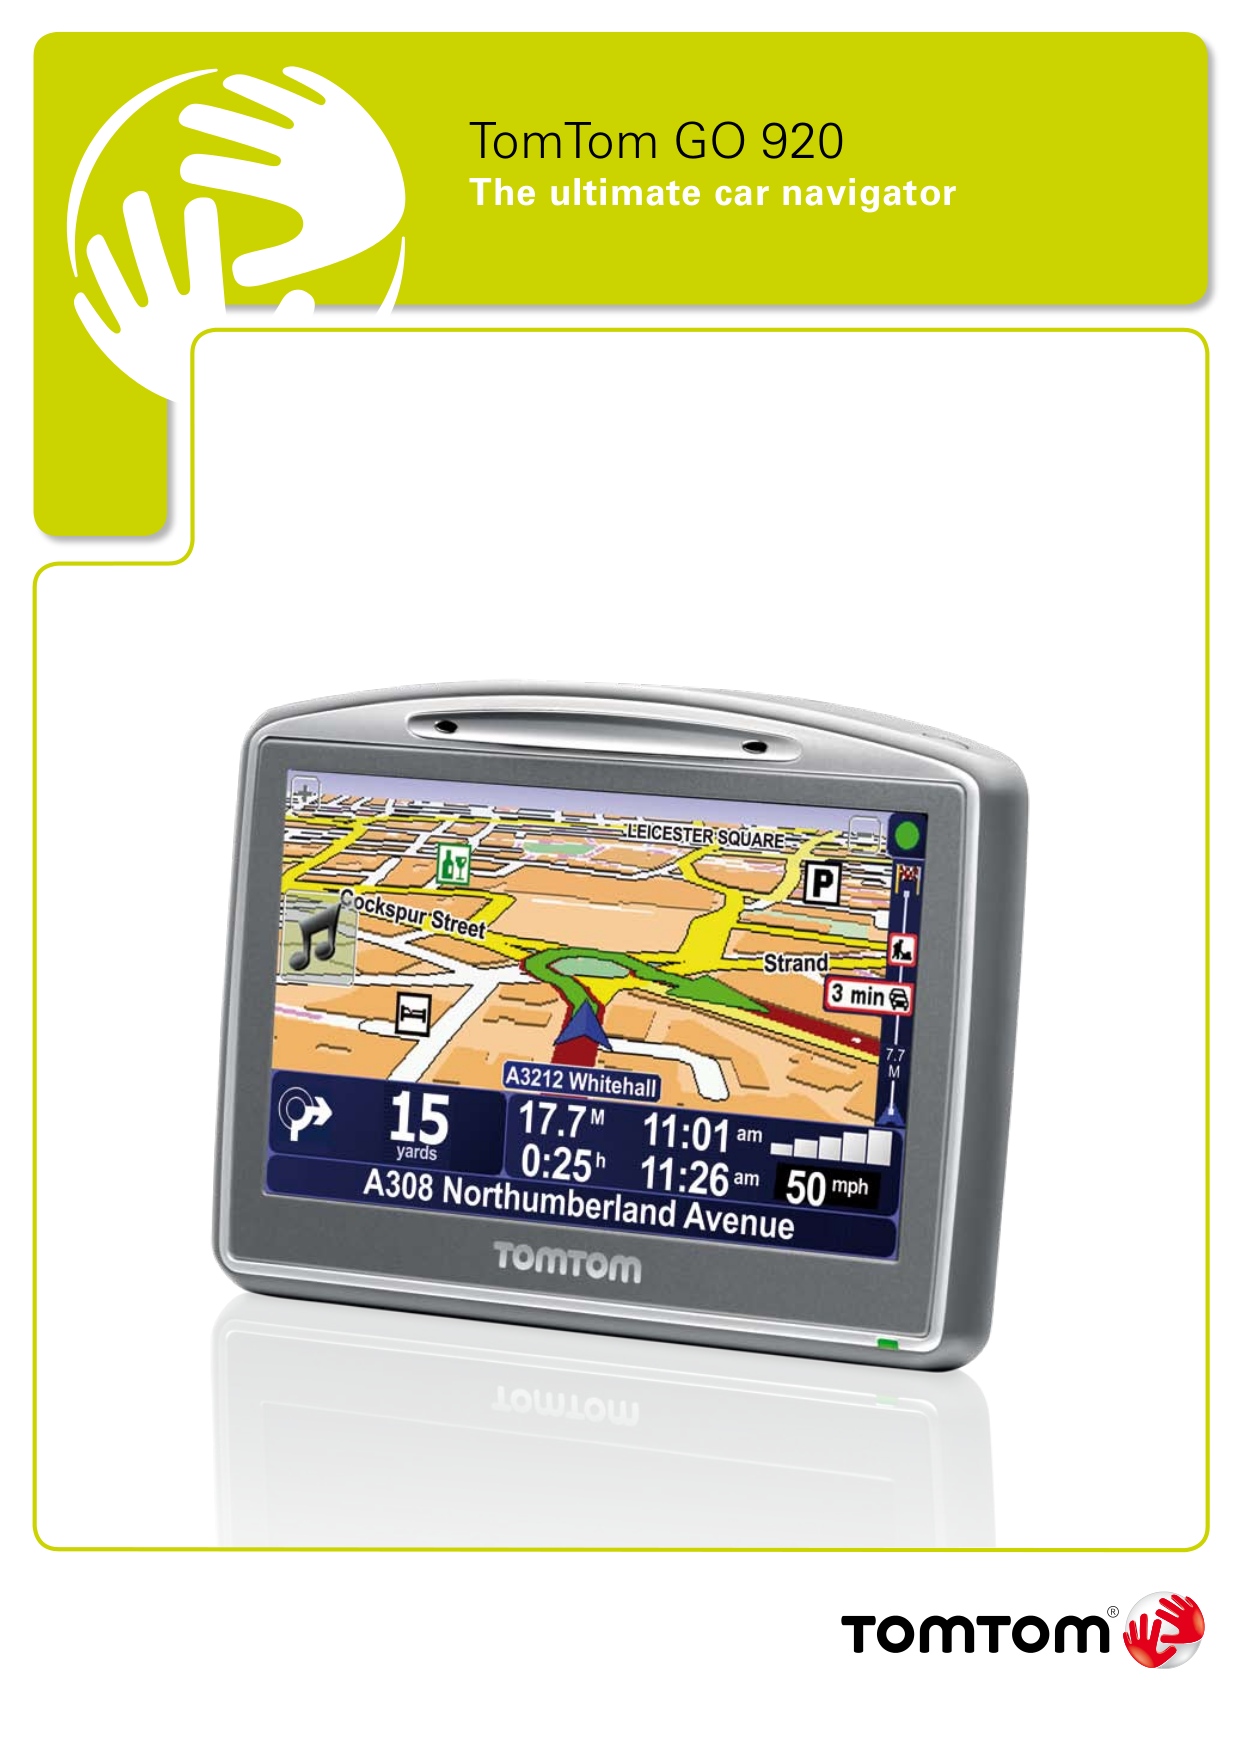 Tomtom one xl manual download pdf for tomtom gps go 920 manual fandeluxe